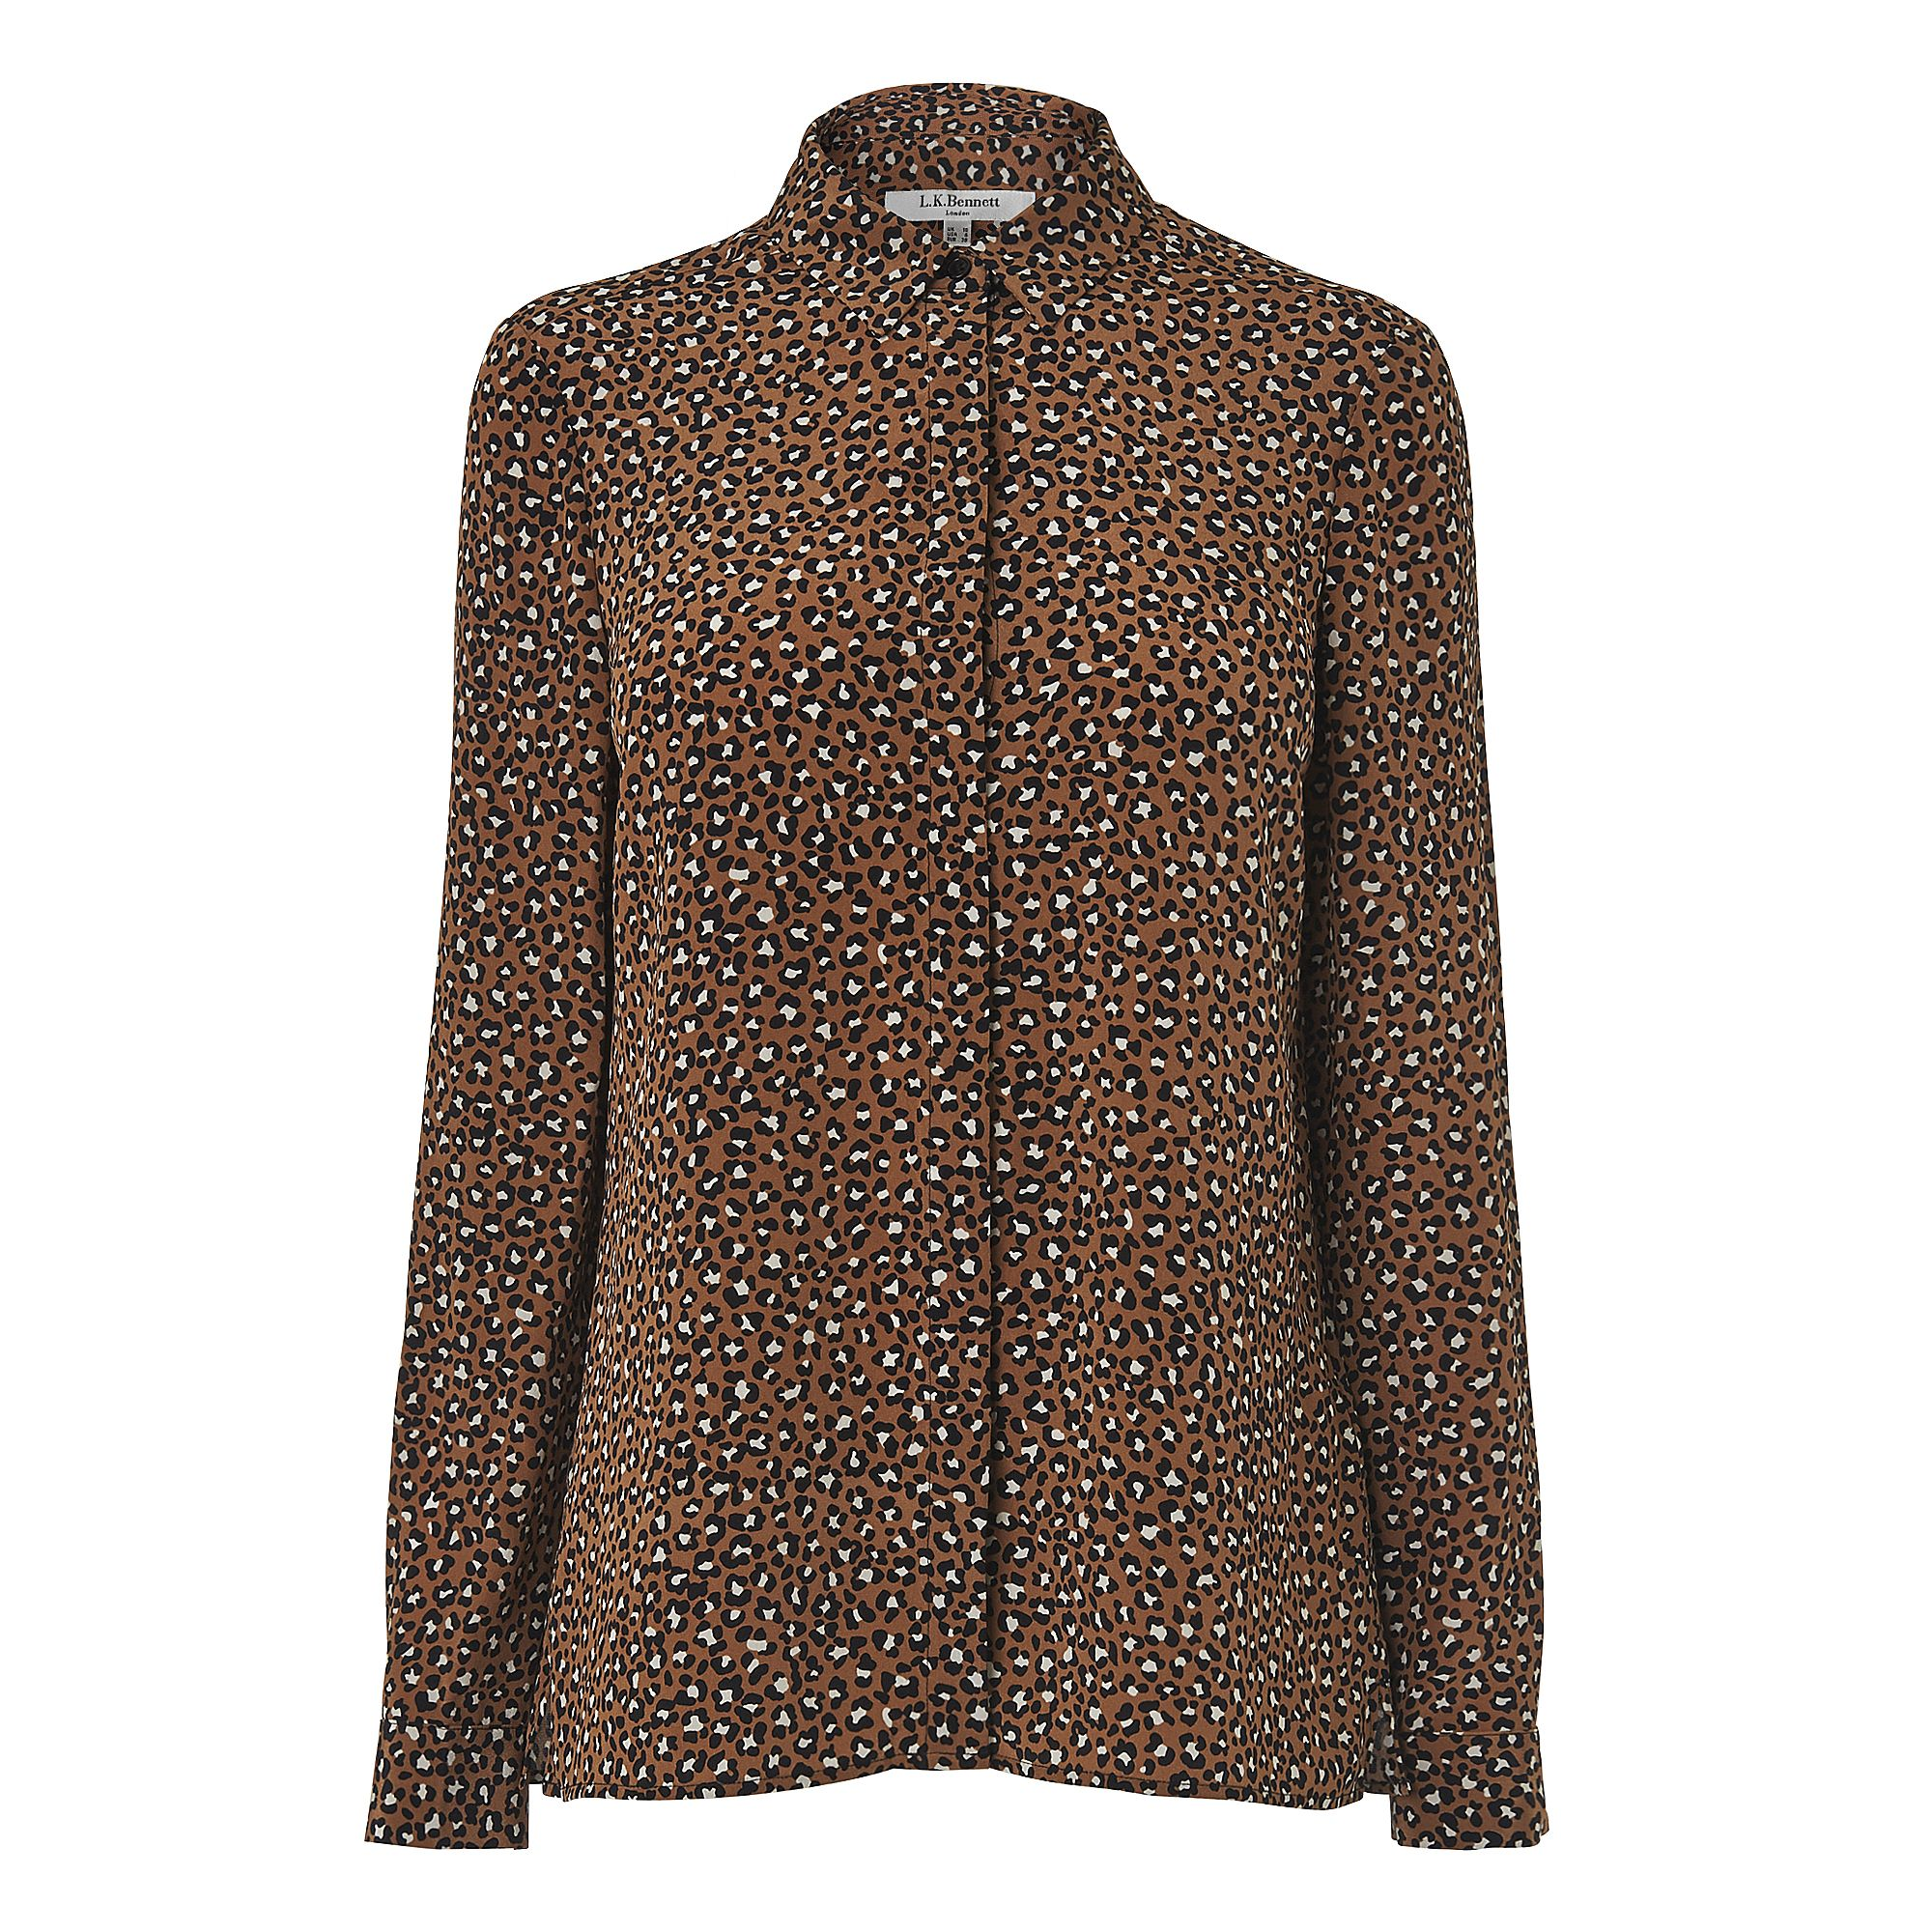 L.K. Bennett Carine Animal Print Silk Top, Multi-Coloured